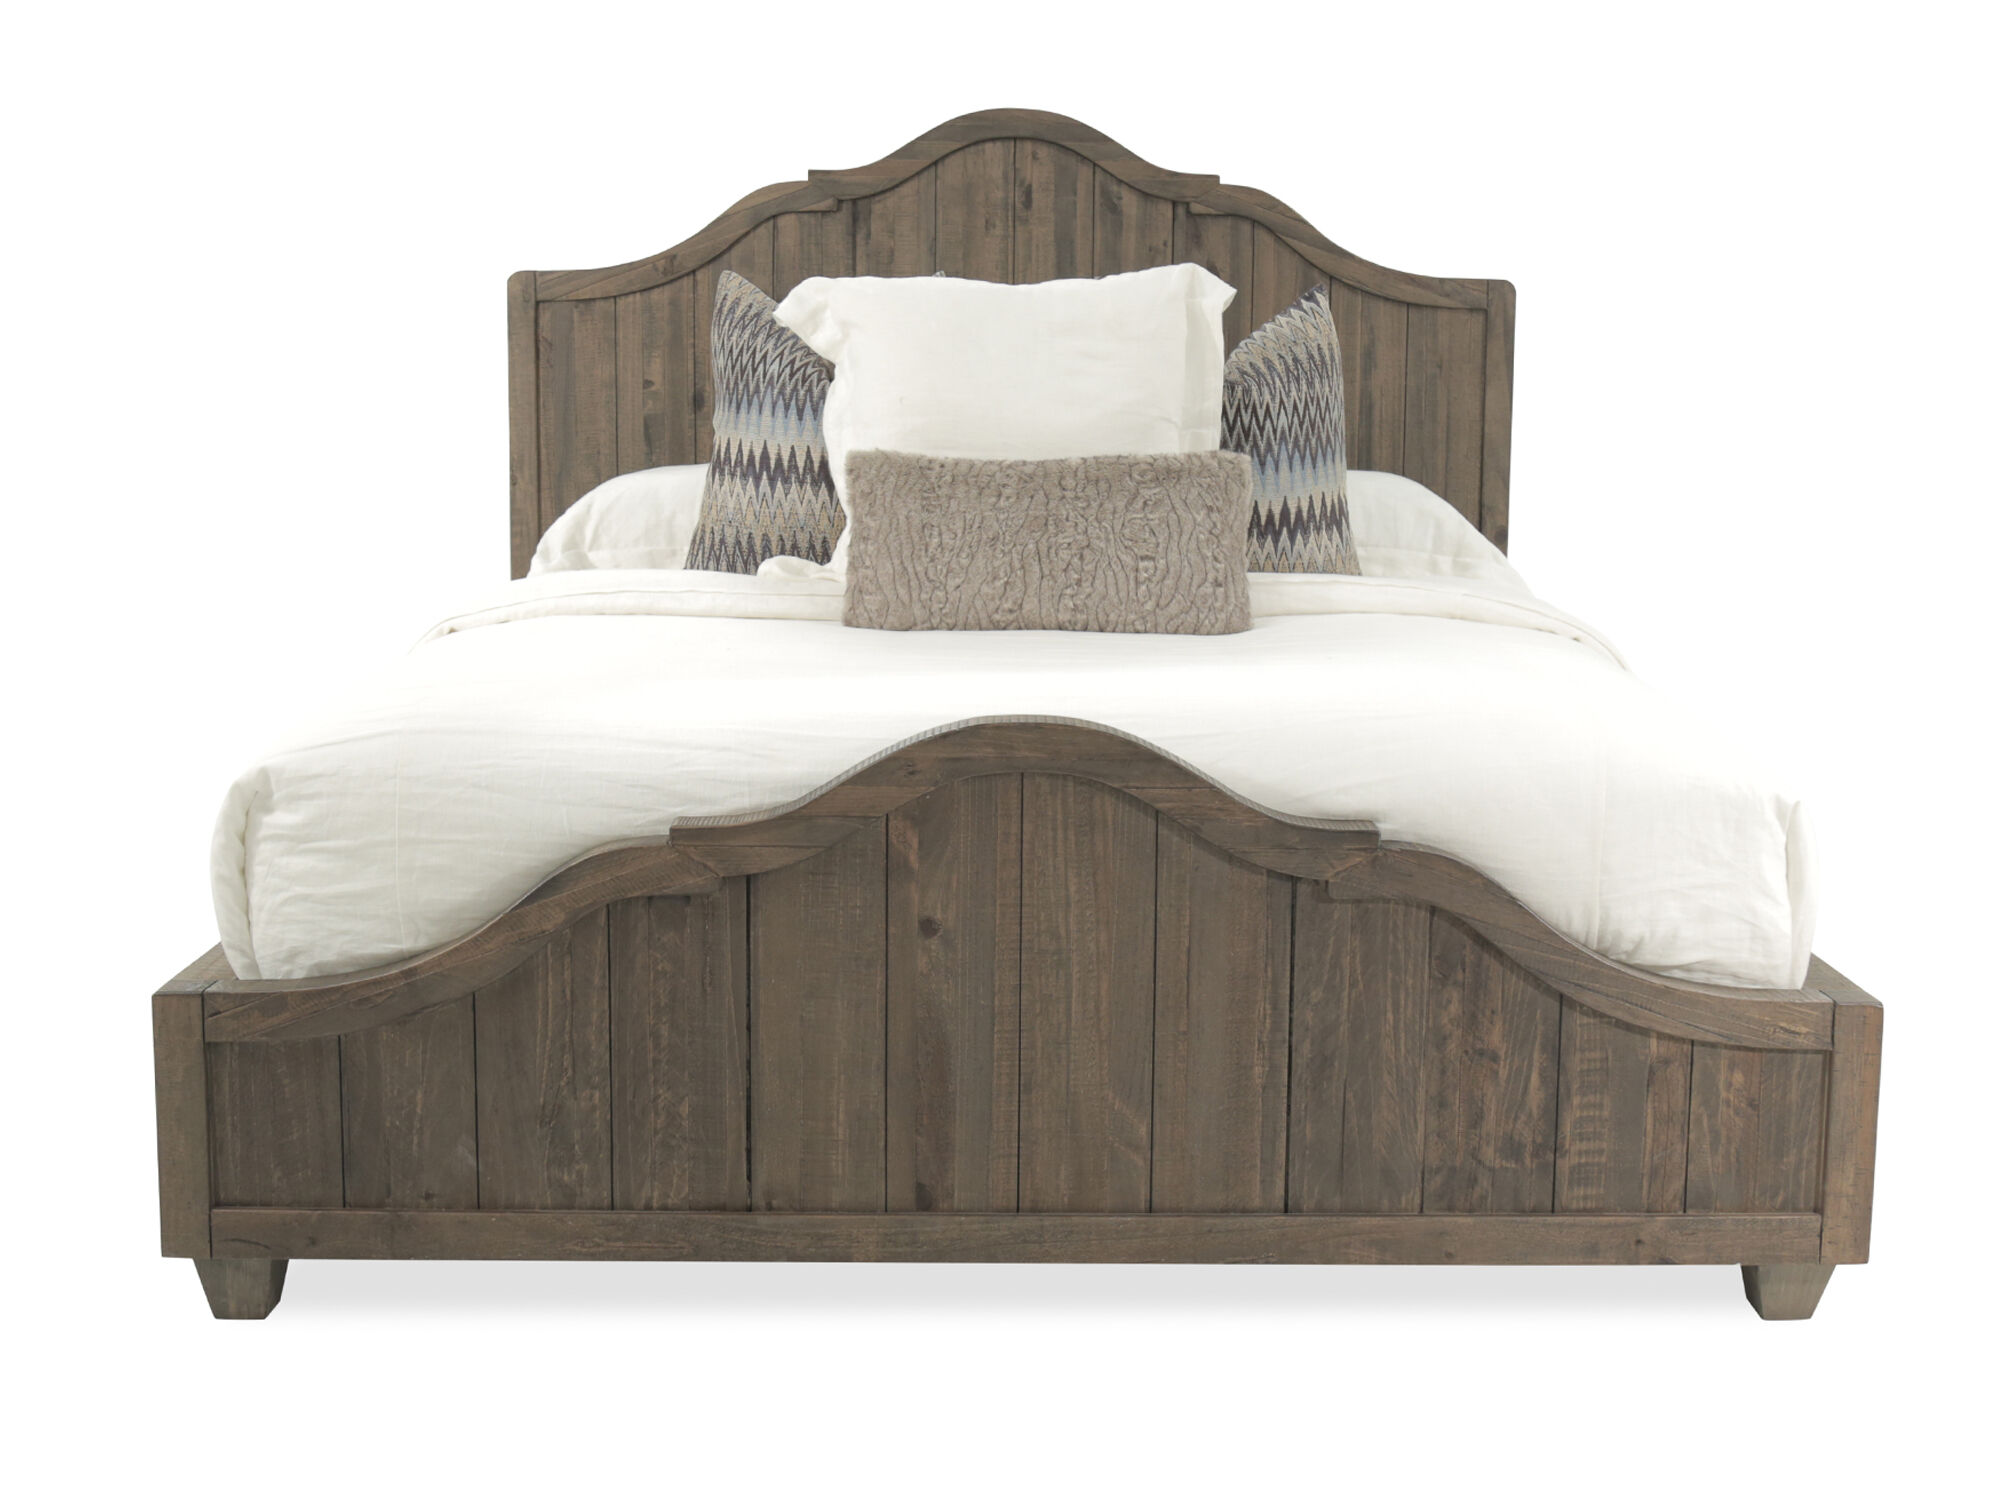 Teal bedroom furniture Beach Cottage 64quot Cottage Queen Panel Bed In Natural Mathis Brothers Bedroom Furniture Stores Mathis Brothers